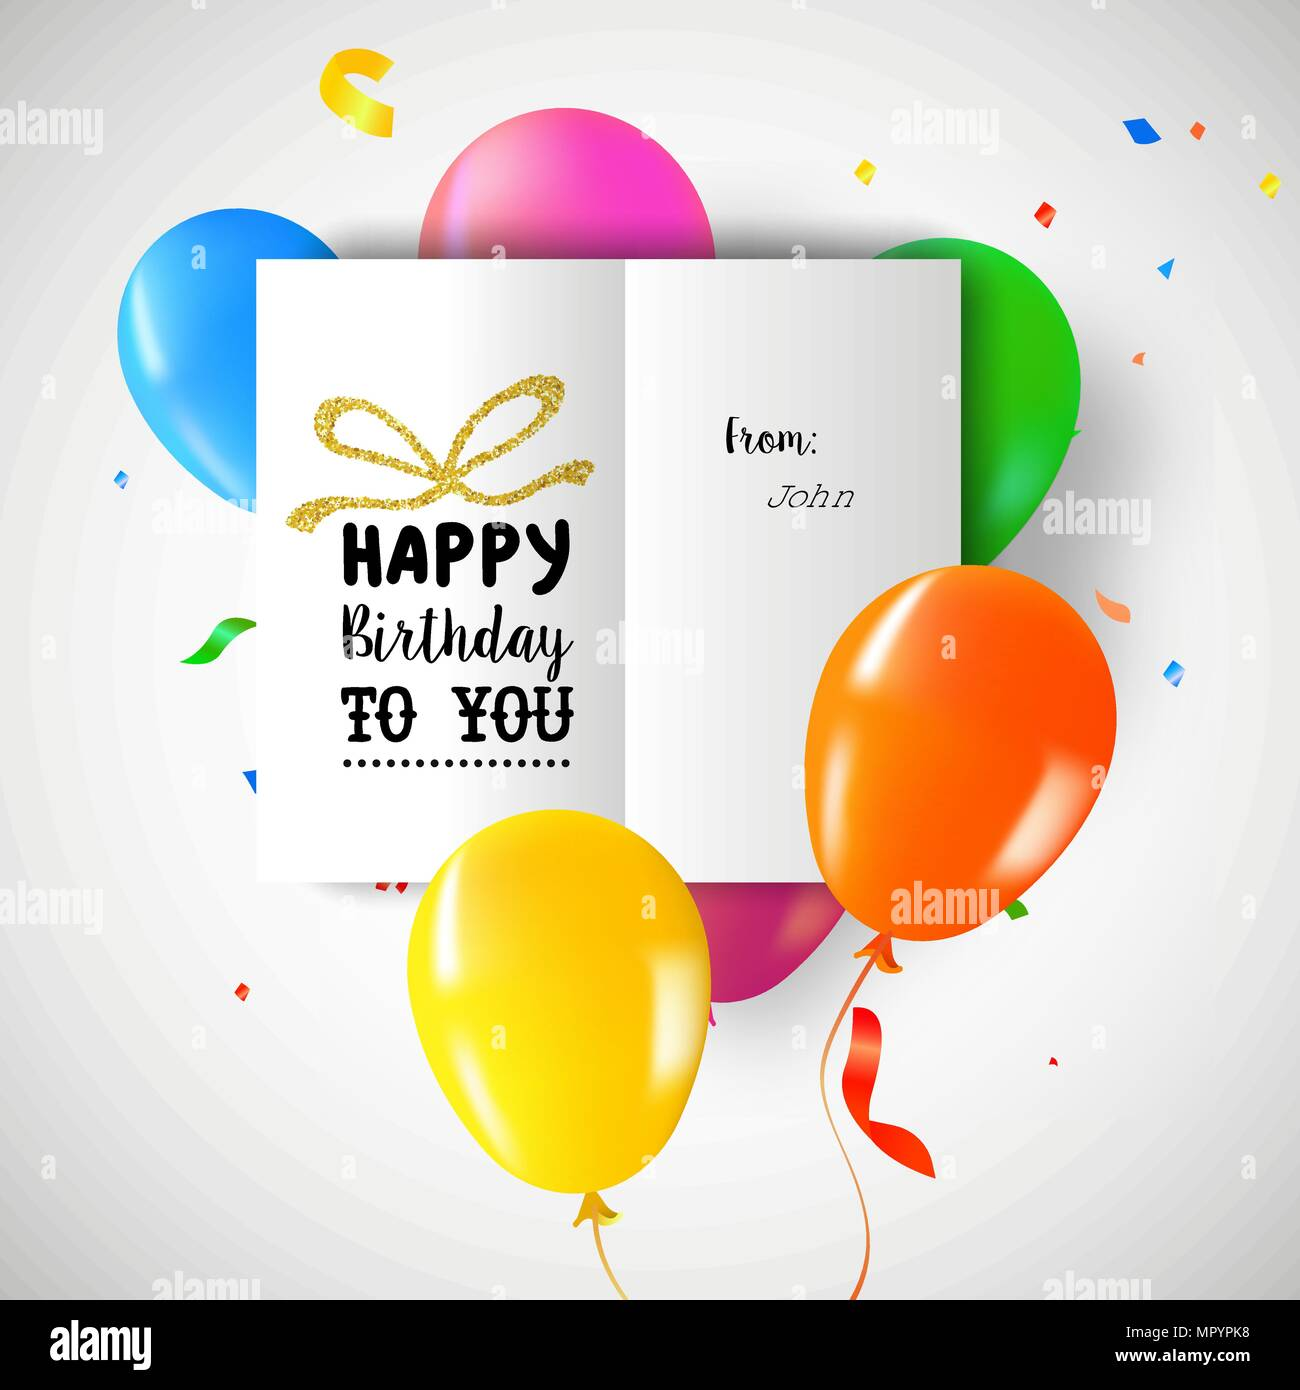 Happy Birthday Greeting Card On Colorful Party Balloons And Confetti